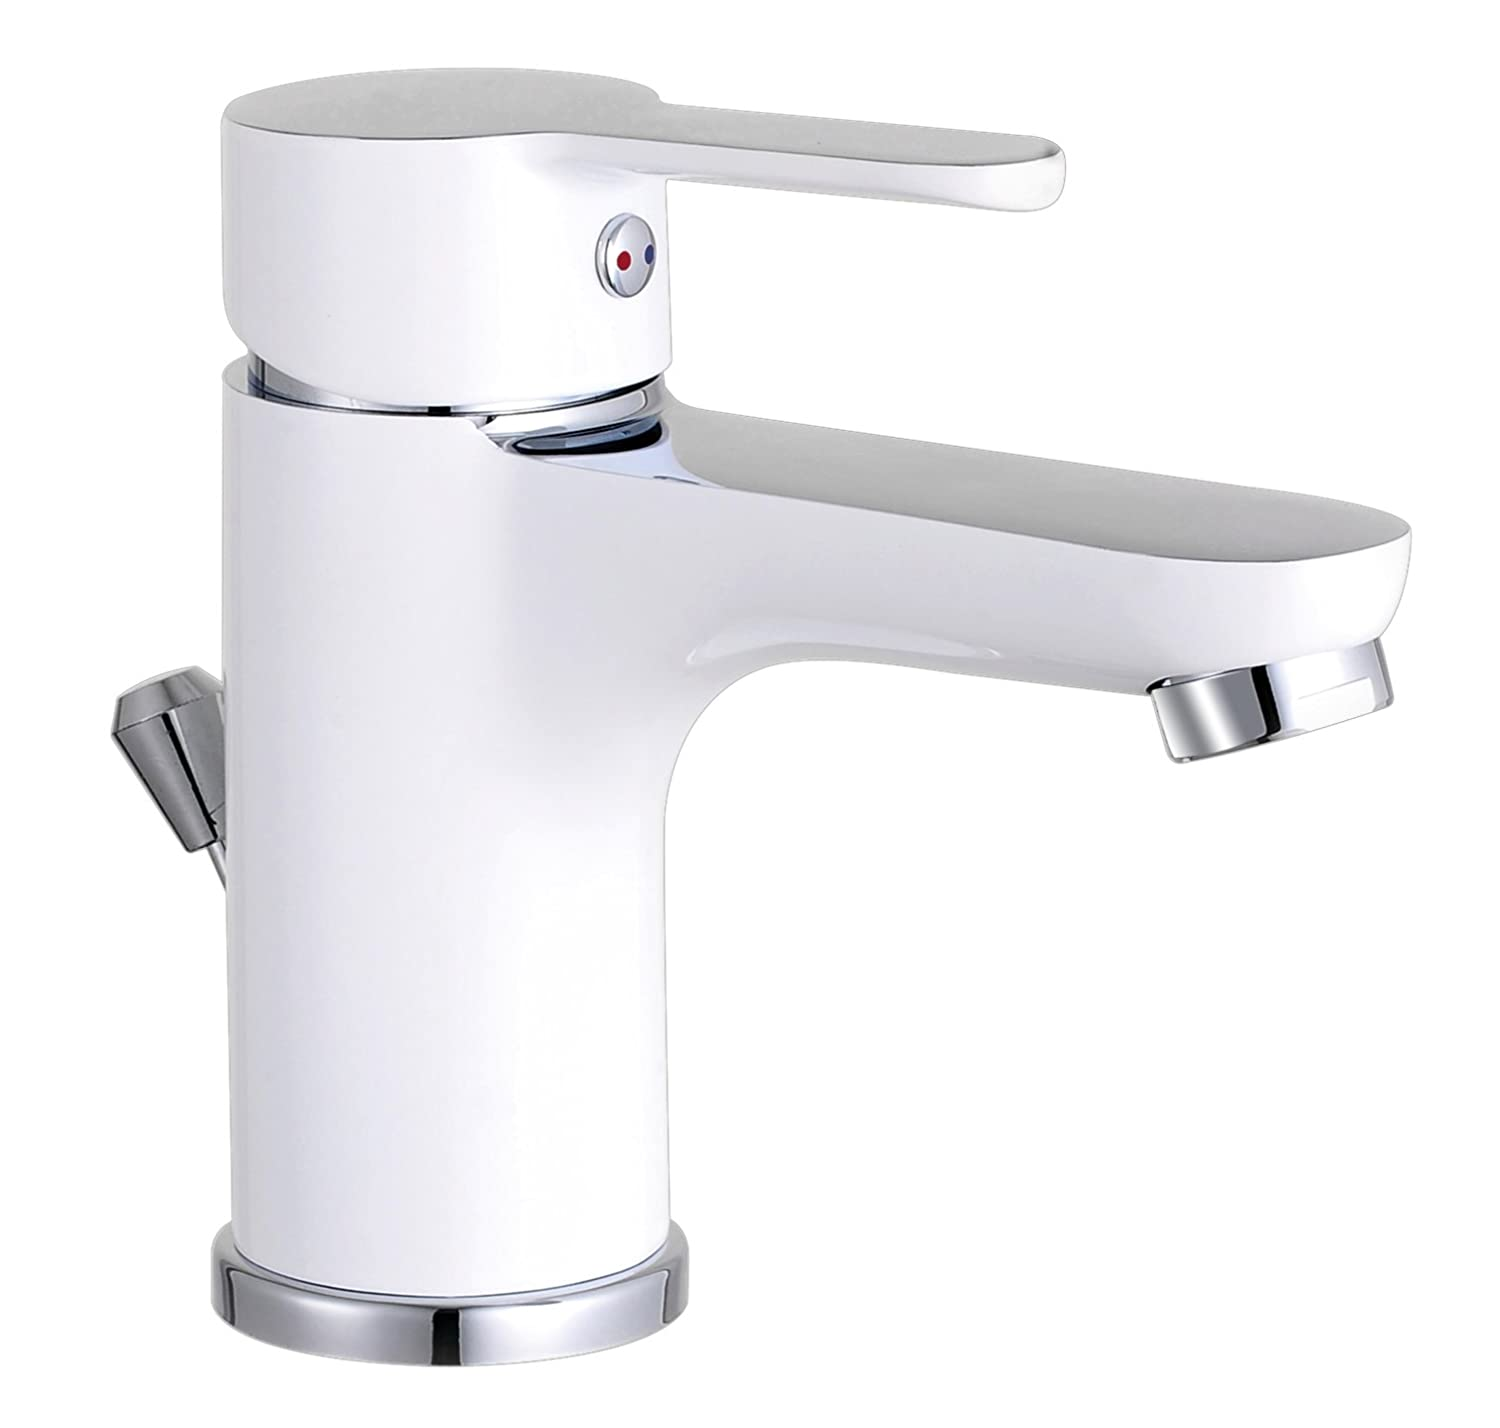 Disegno Nuevo Basin tap, Single-Lever Mixer tap, with pop-up Waste Drain, Bicolour, Item Number: NI075DINWCR Eisl Sanitär GmbH